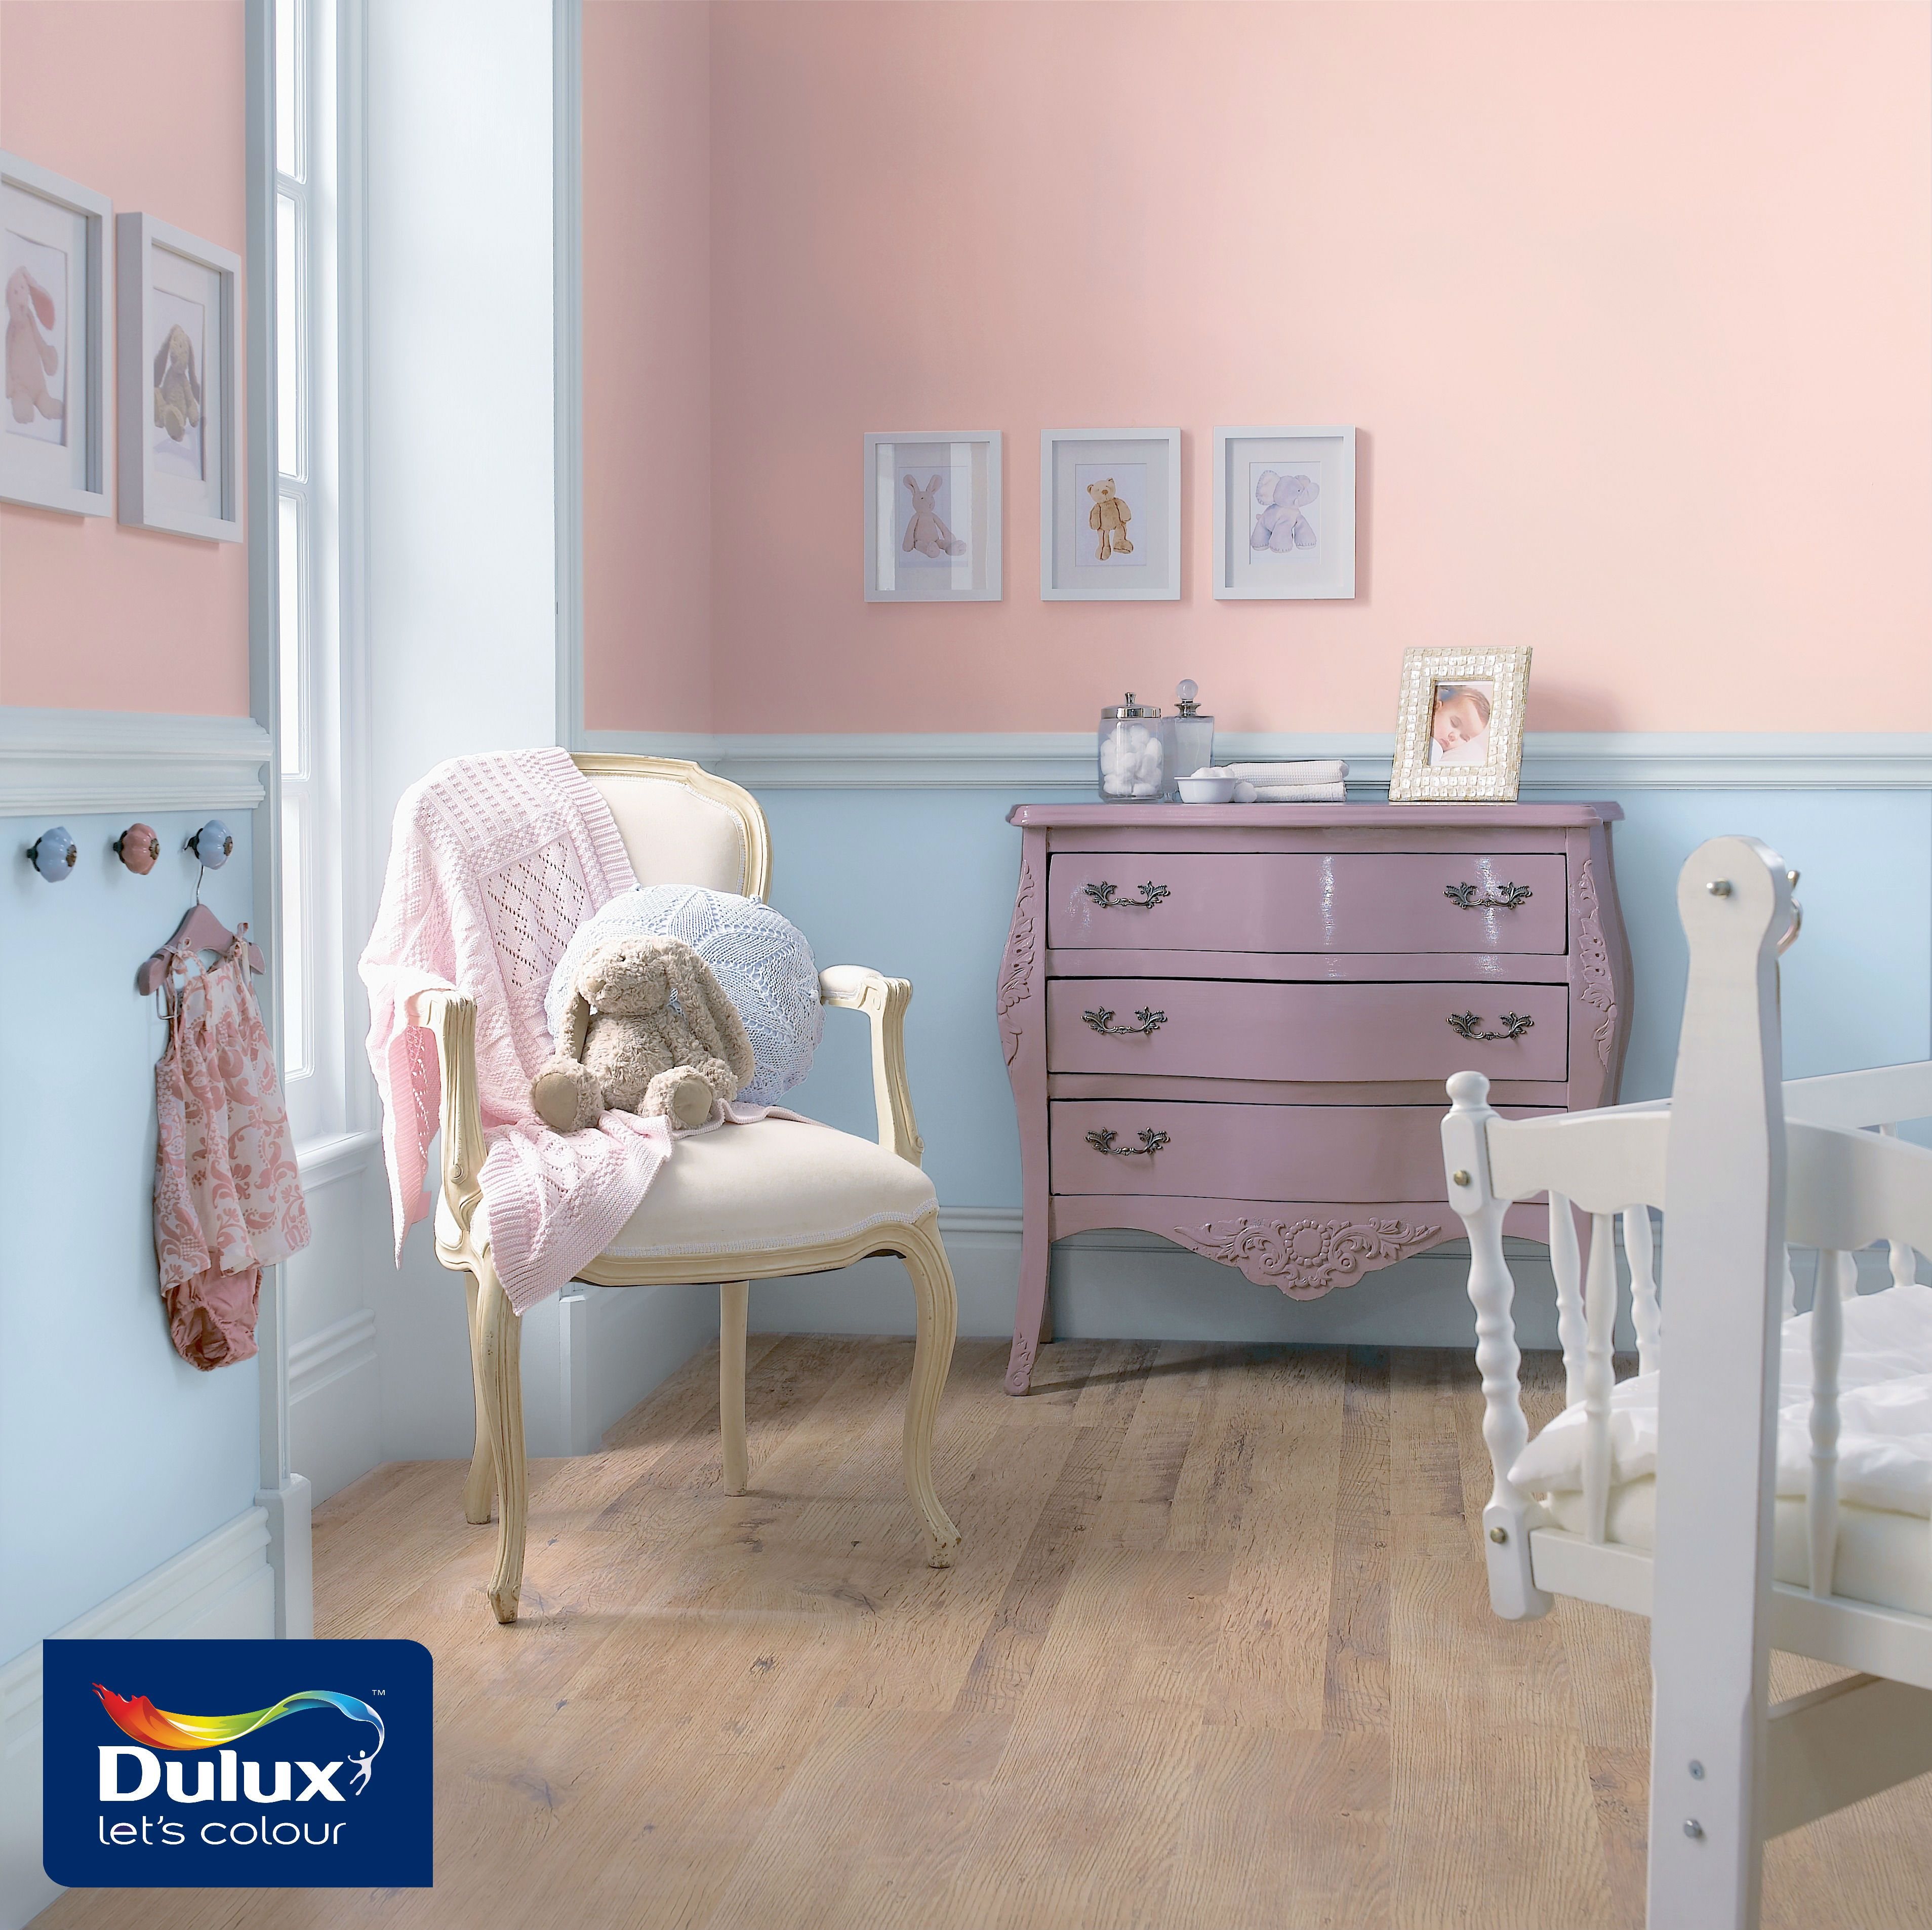 For a pastel coloured bedroom for your little one try out dulux all soft petal